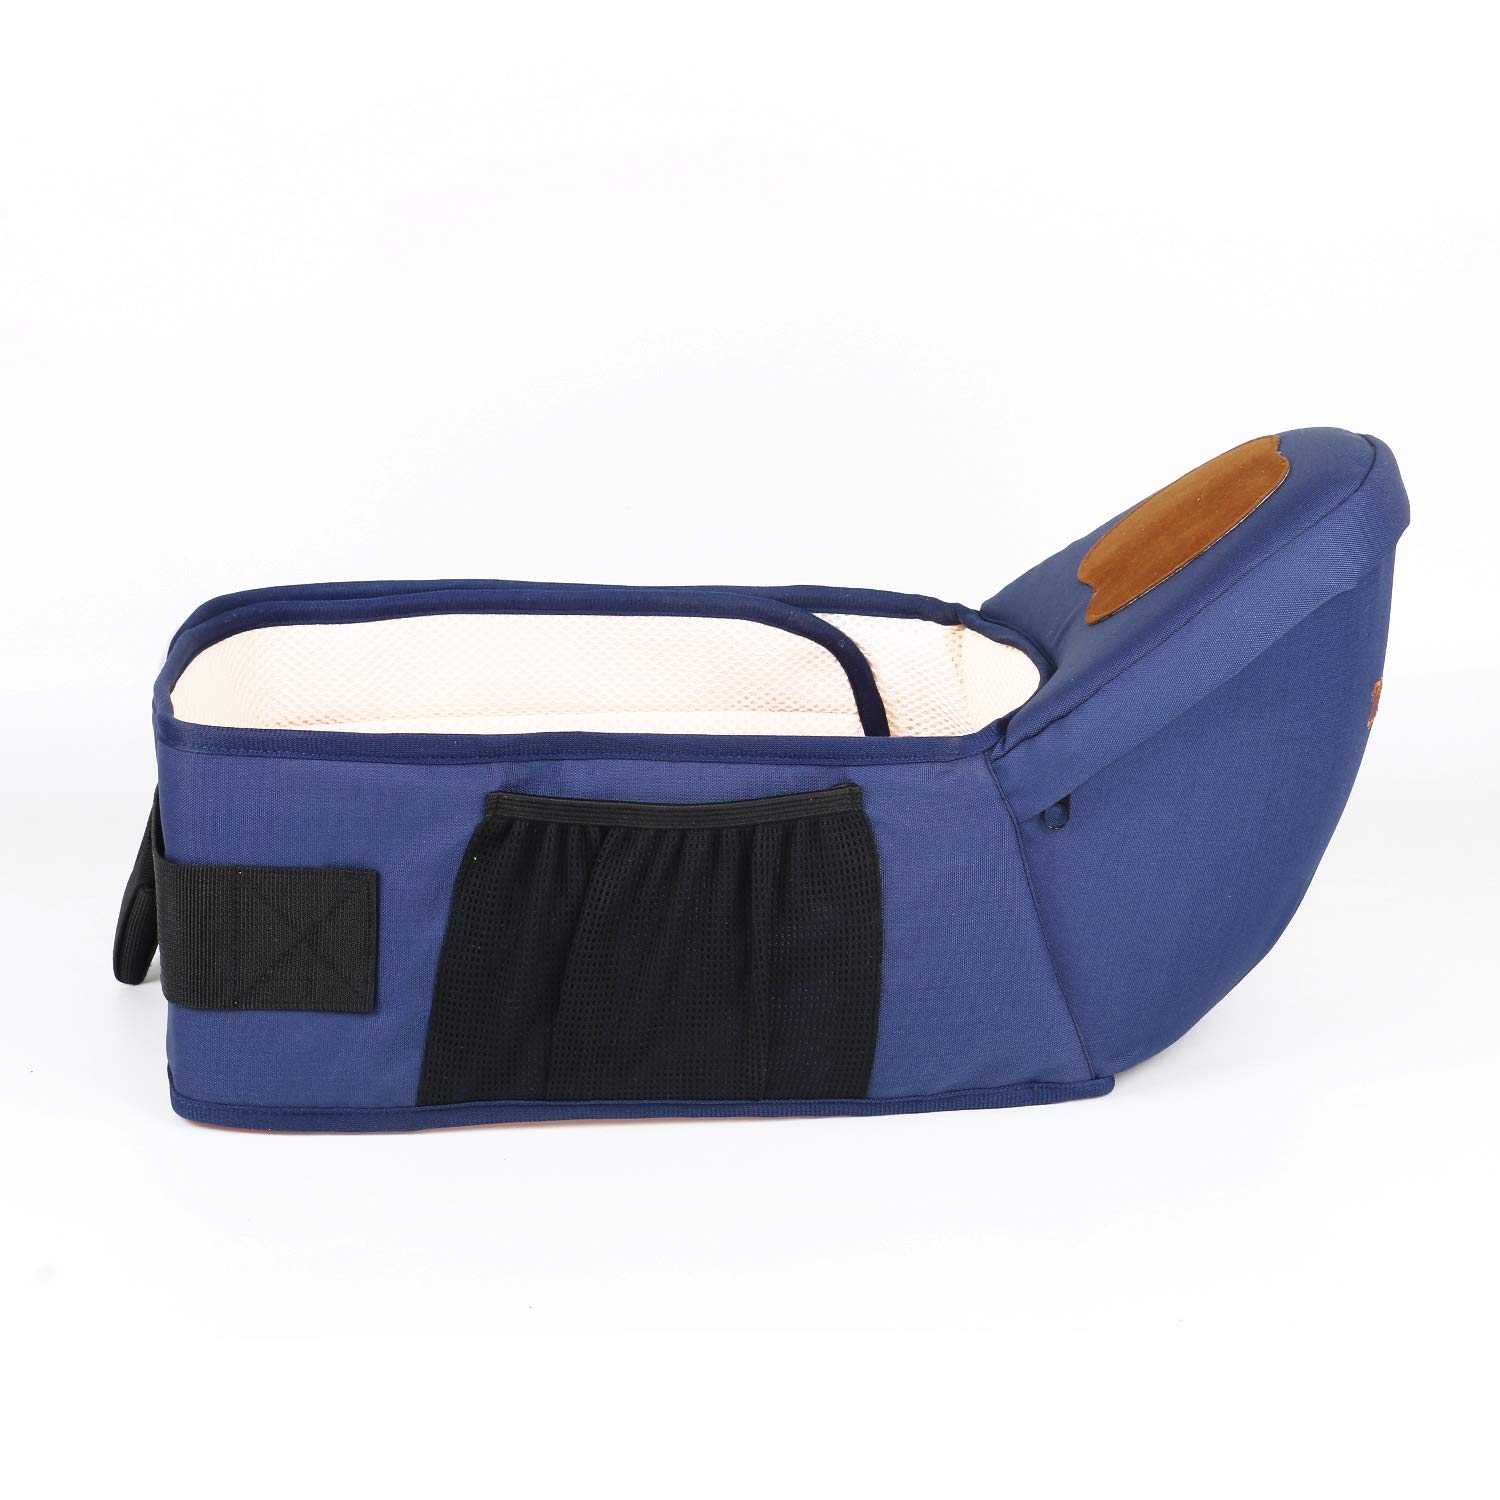 ThreeH Baby Hip Seat Longer Belt 51 Inch Toodler Waist Stool Seat BC30,Blue